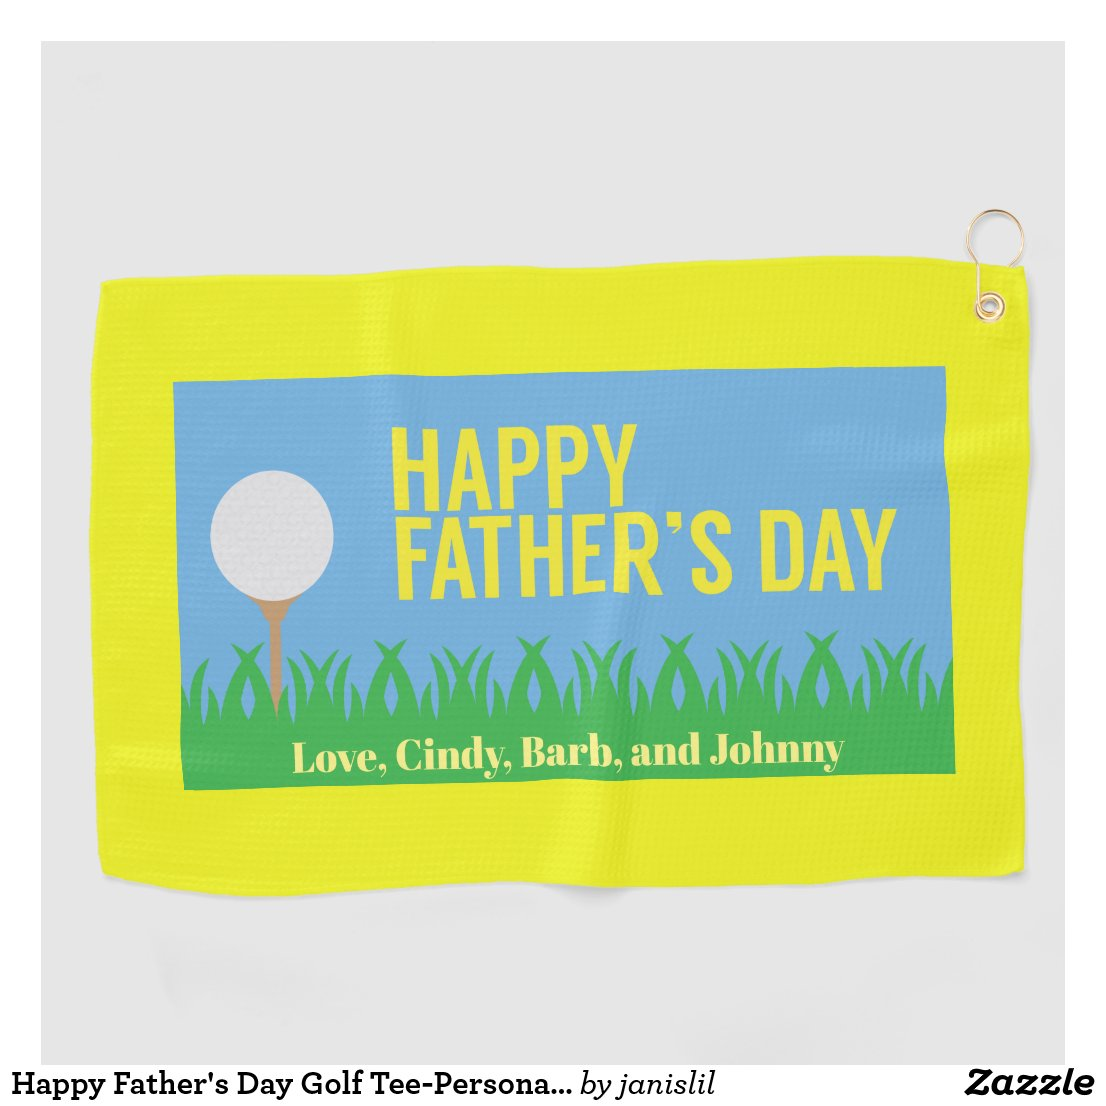 Happy Father's Day Golf Tee-Personalized Golf Towel